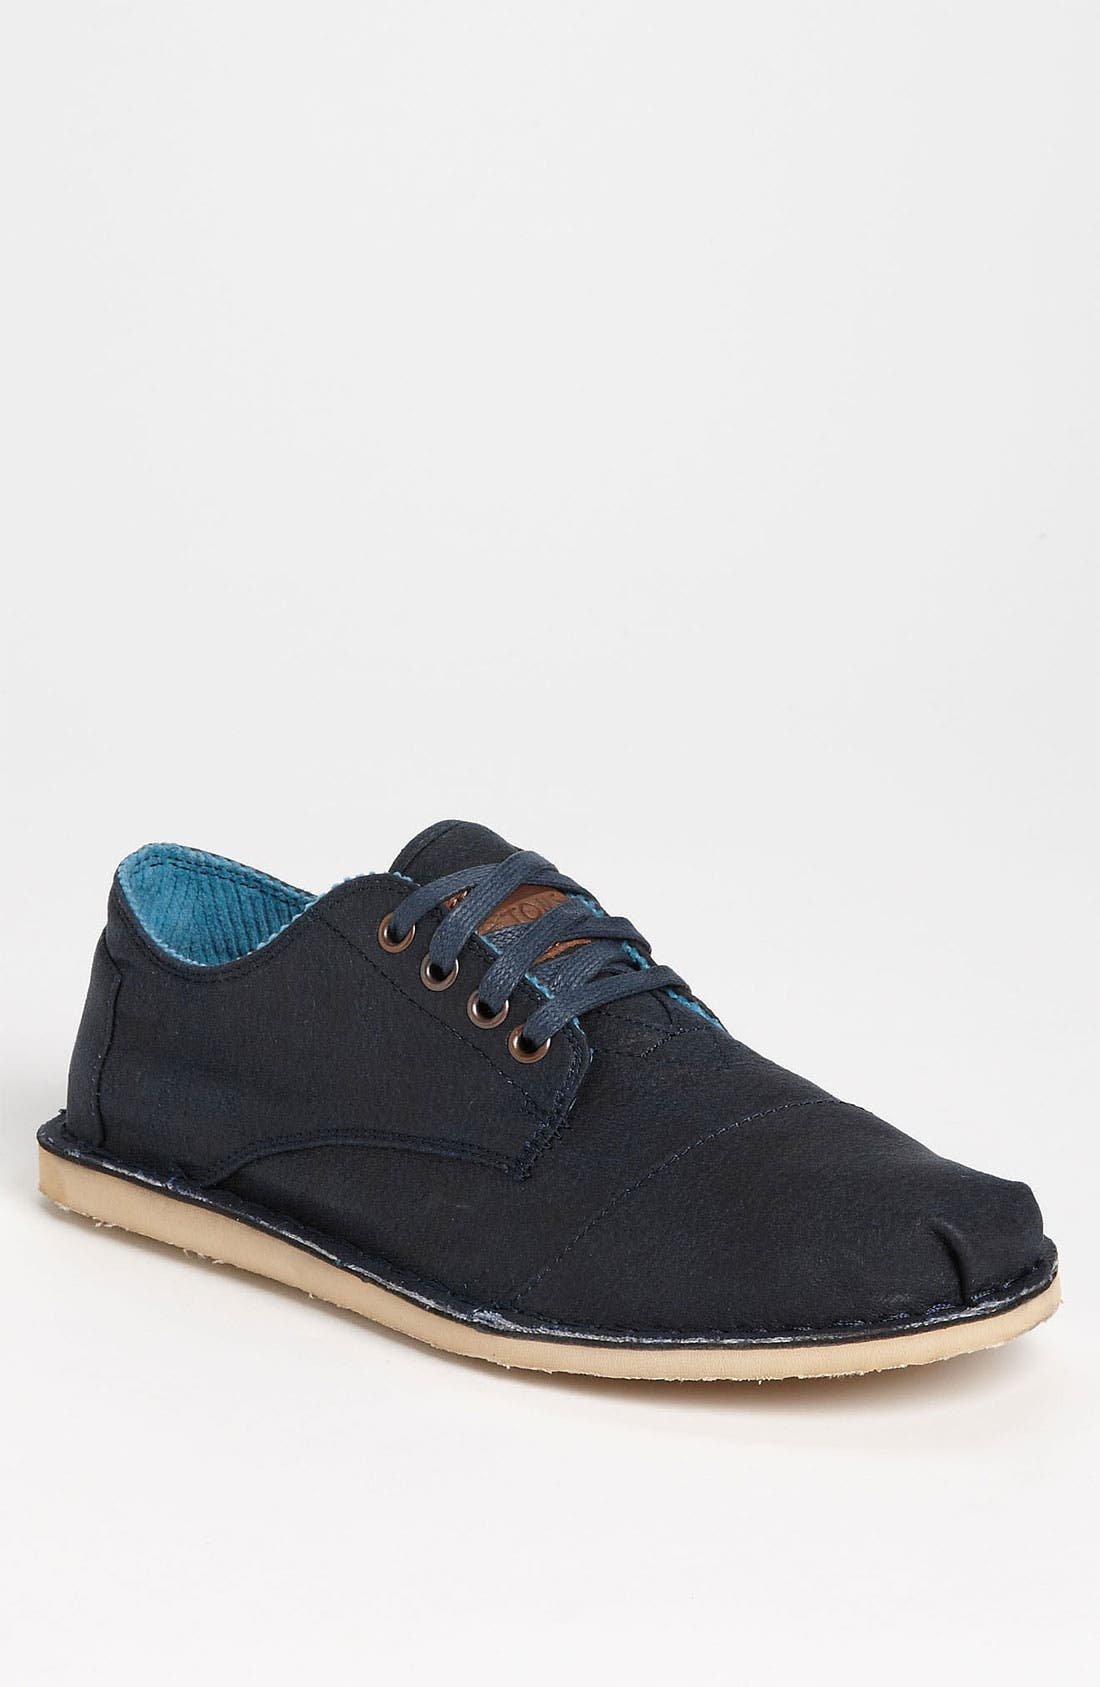 Alternate Image 1 Selected - TOMS 'Desert - Heritage' Oxford (Men)